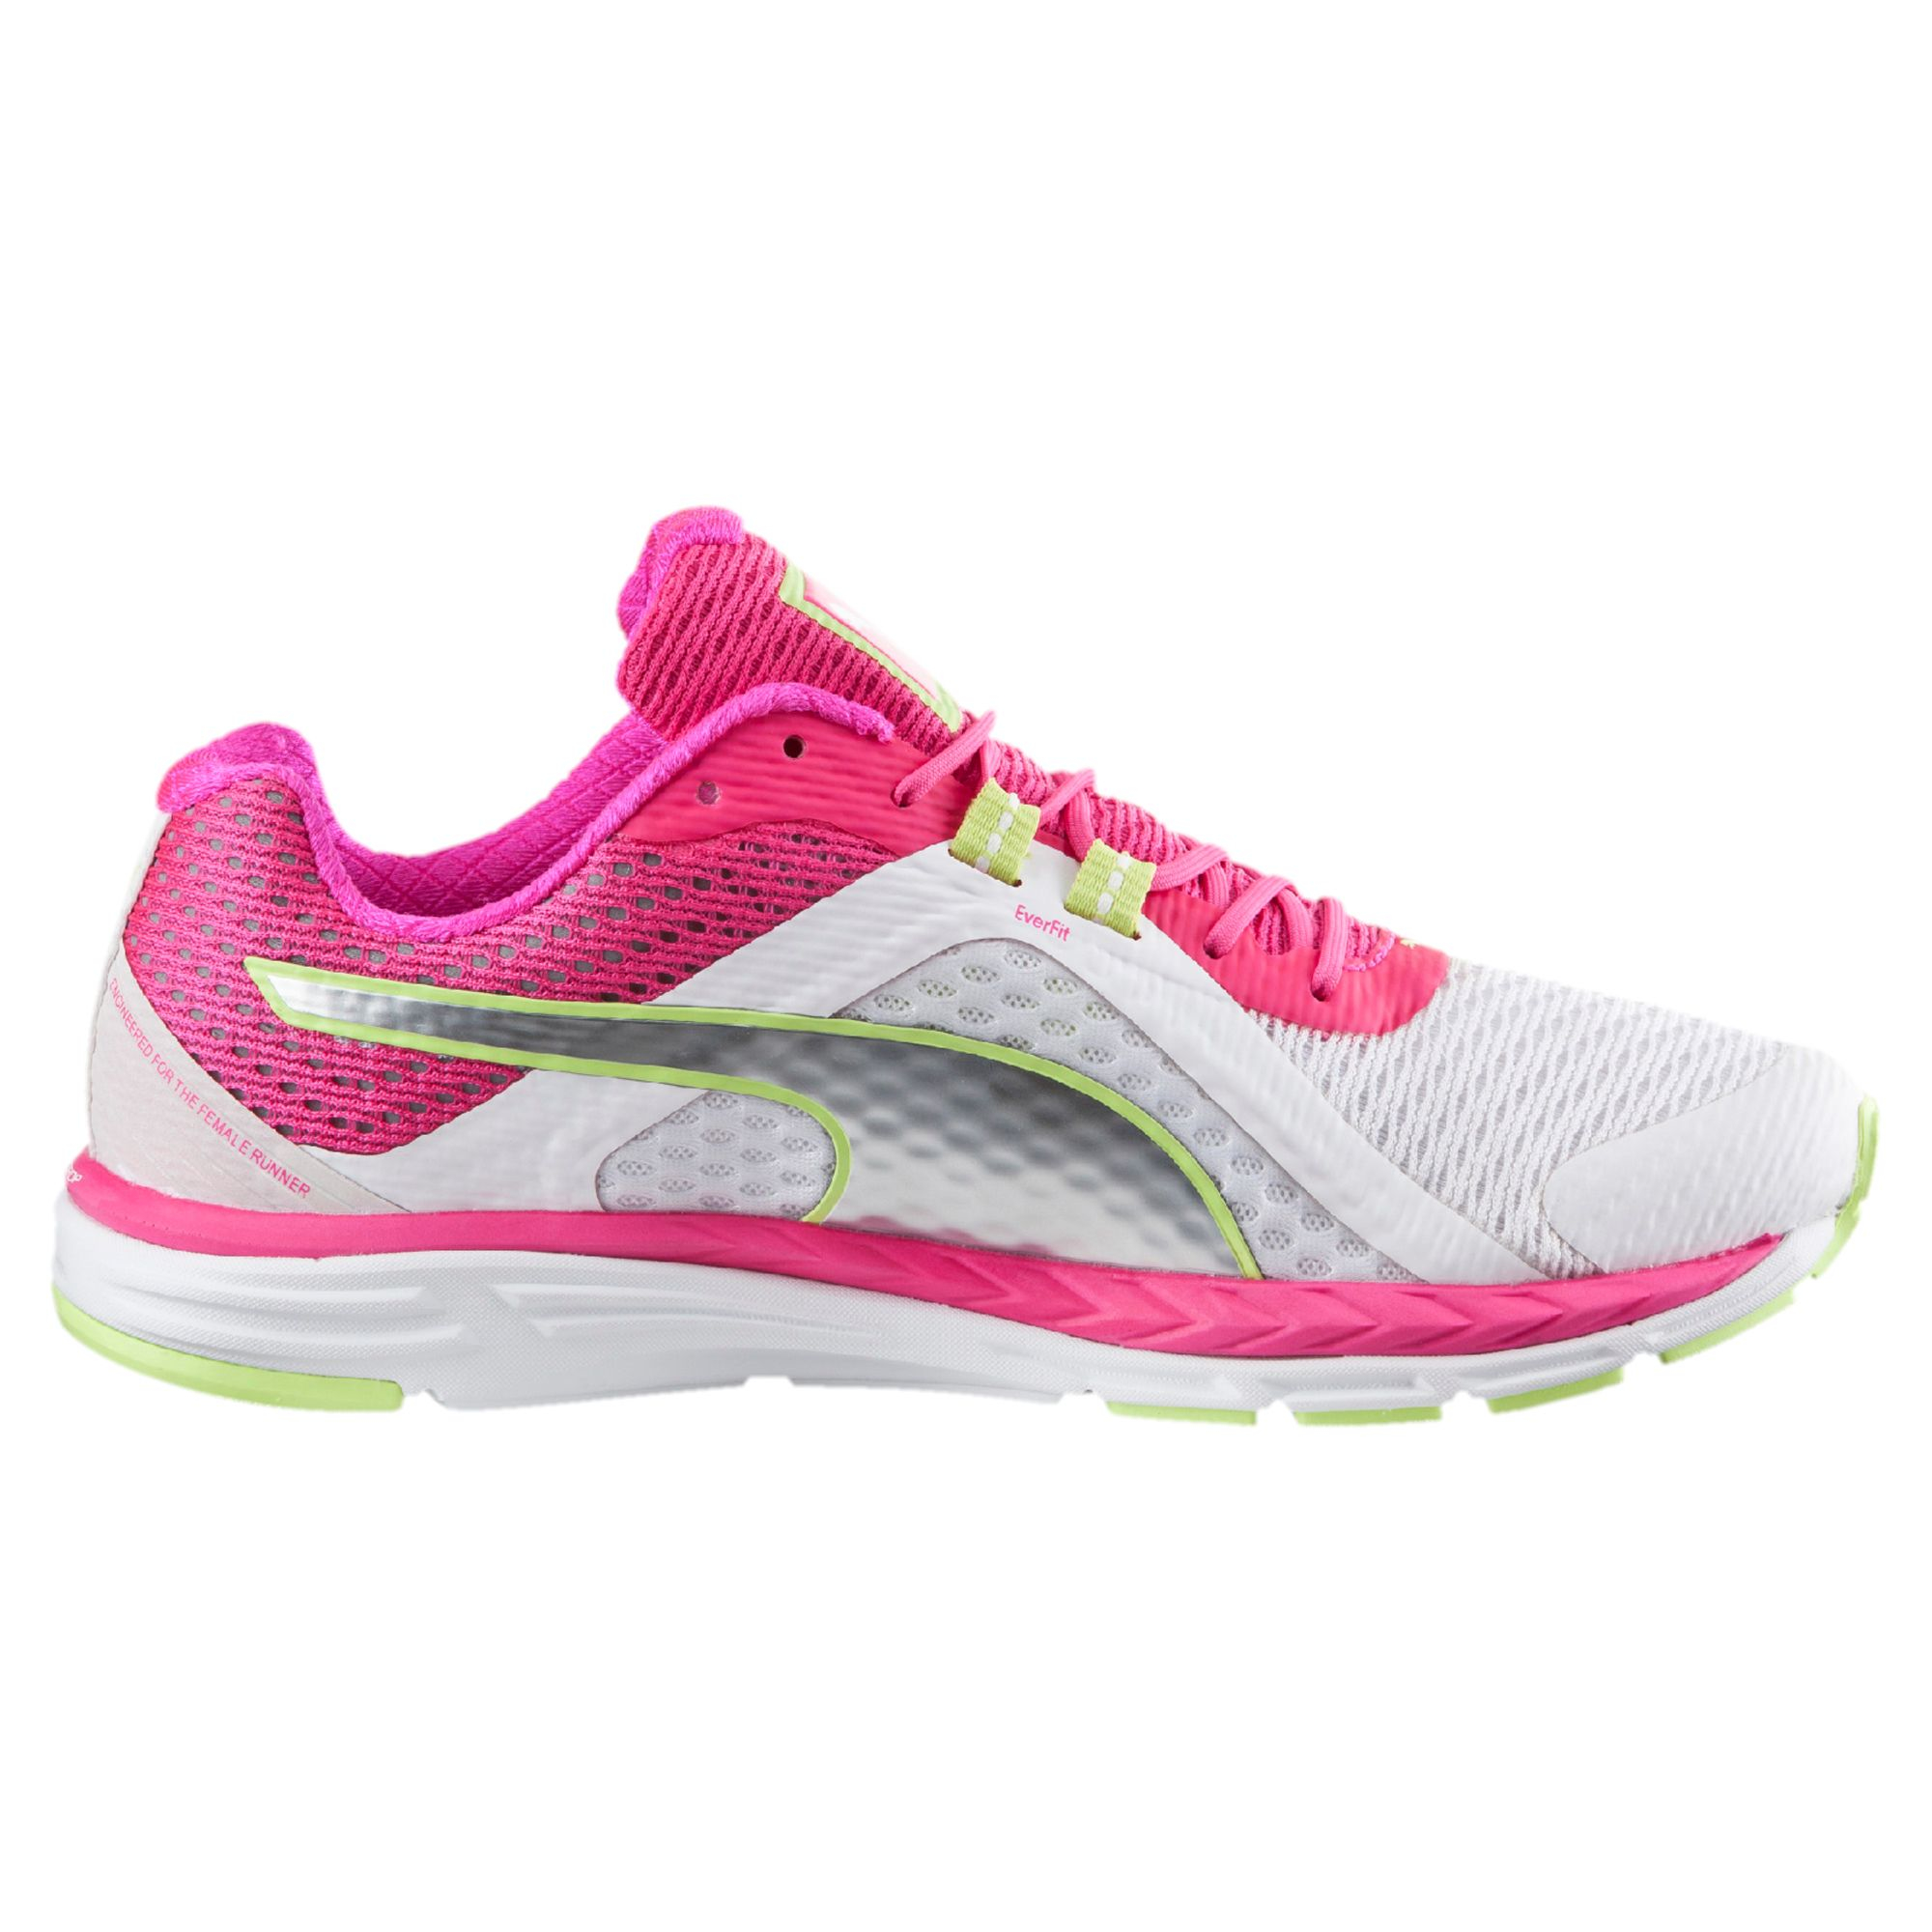 Lyst - Puma Speed 500 Ignite Women s Running Shoes 791eb5bbf